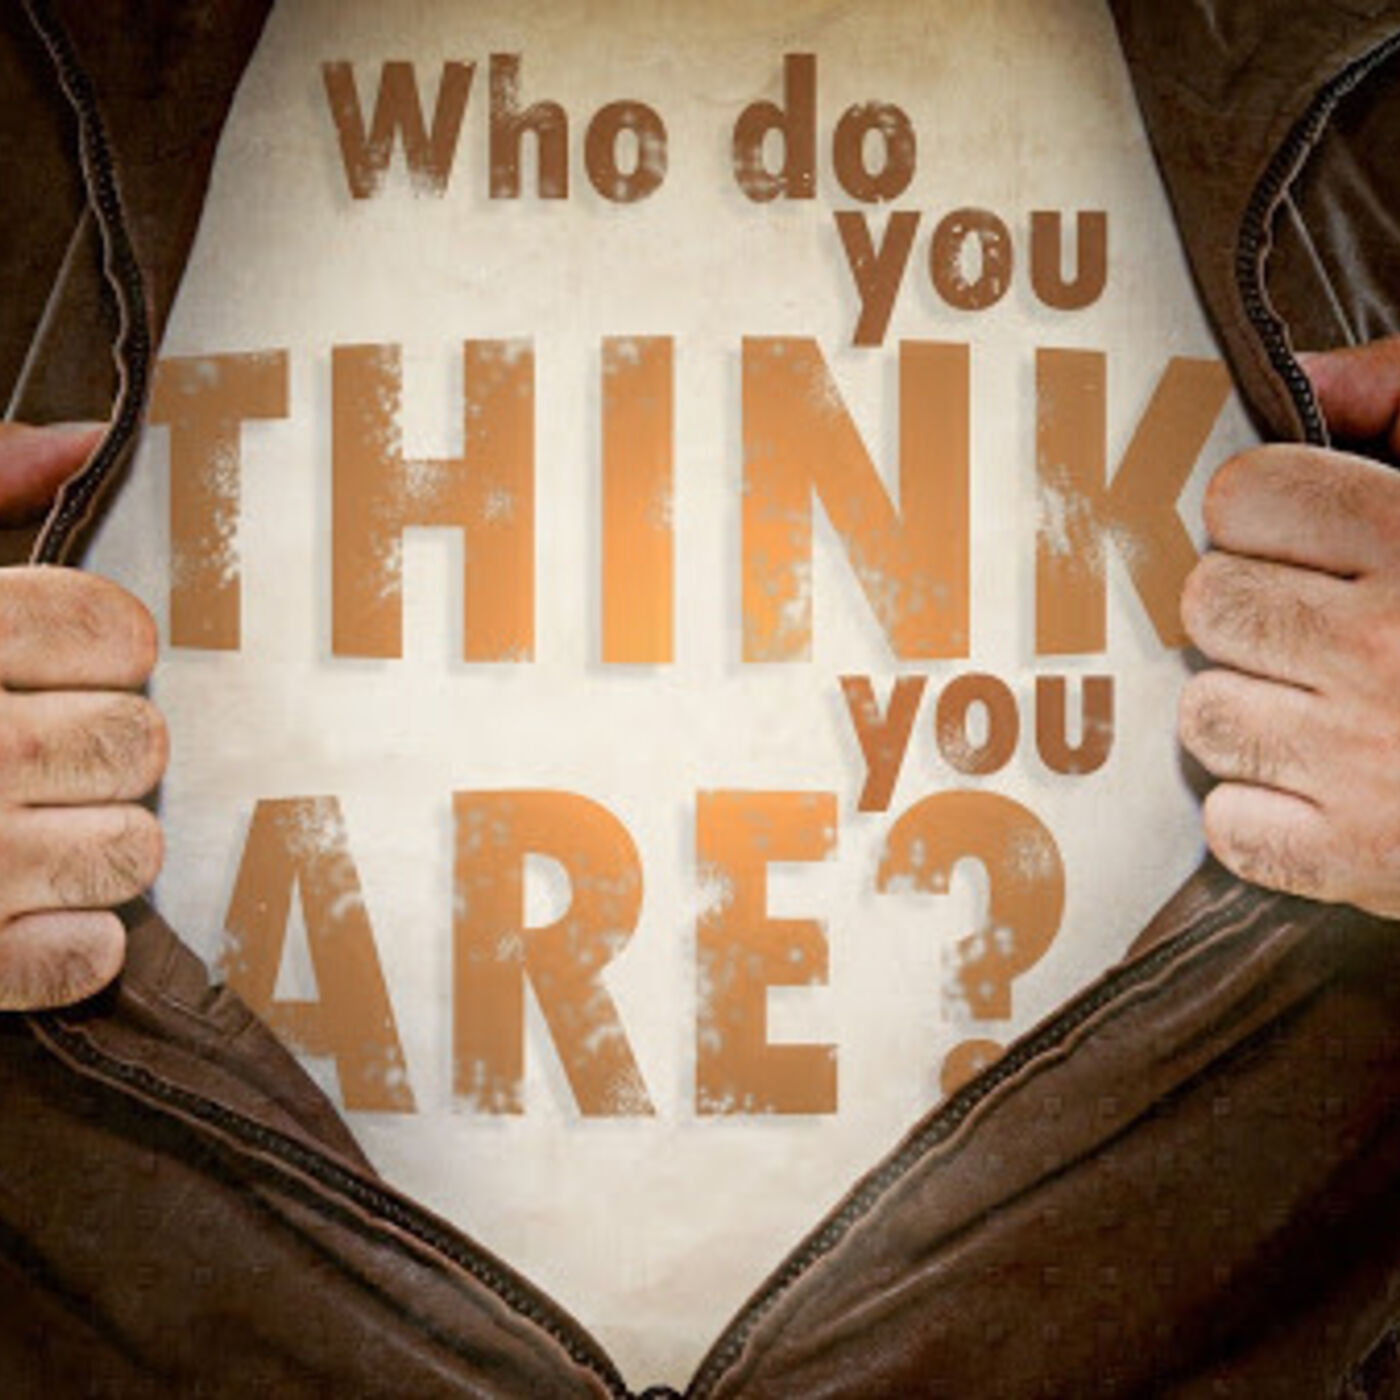 Episode 368 - You are not what you feel you are!